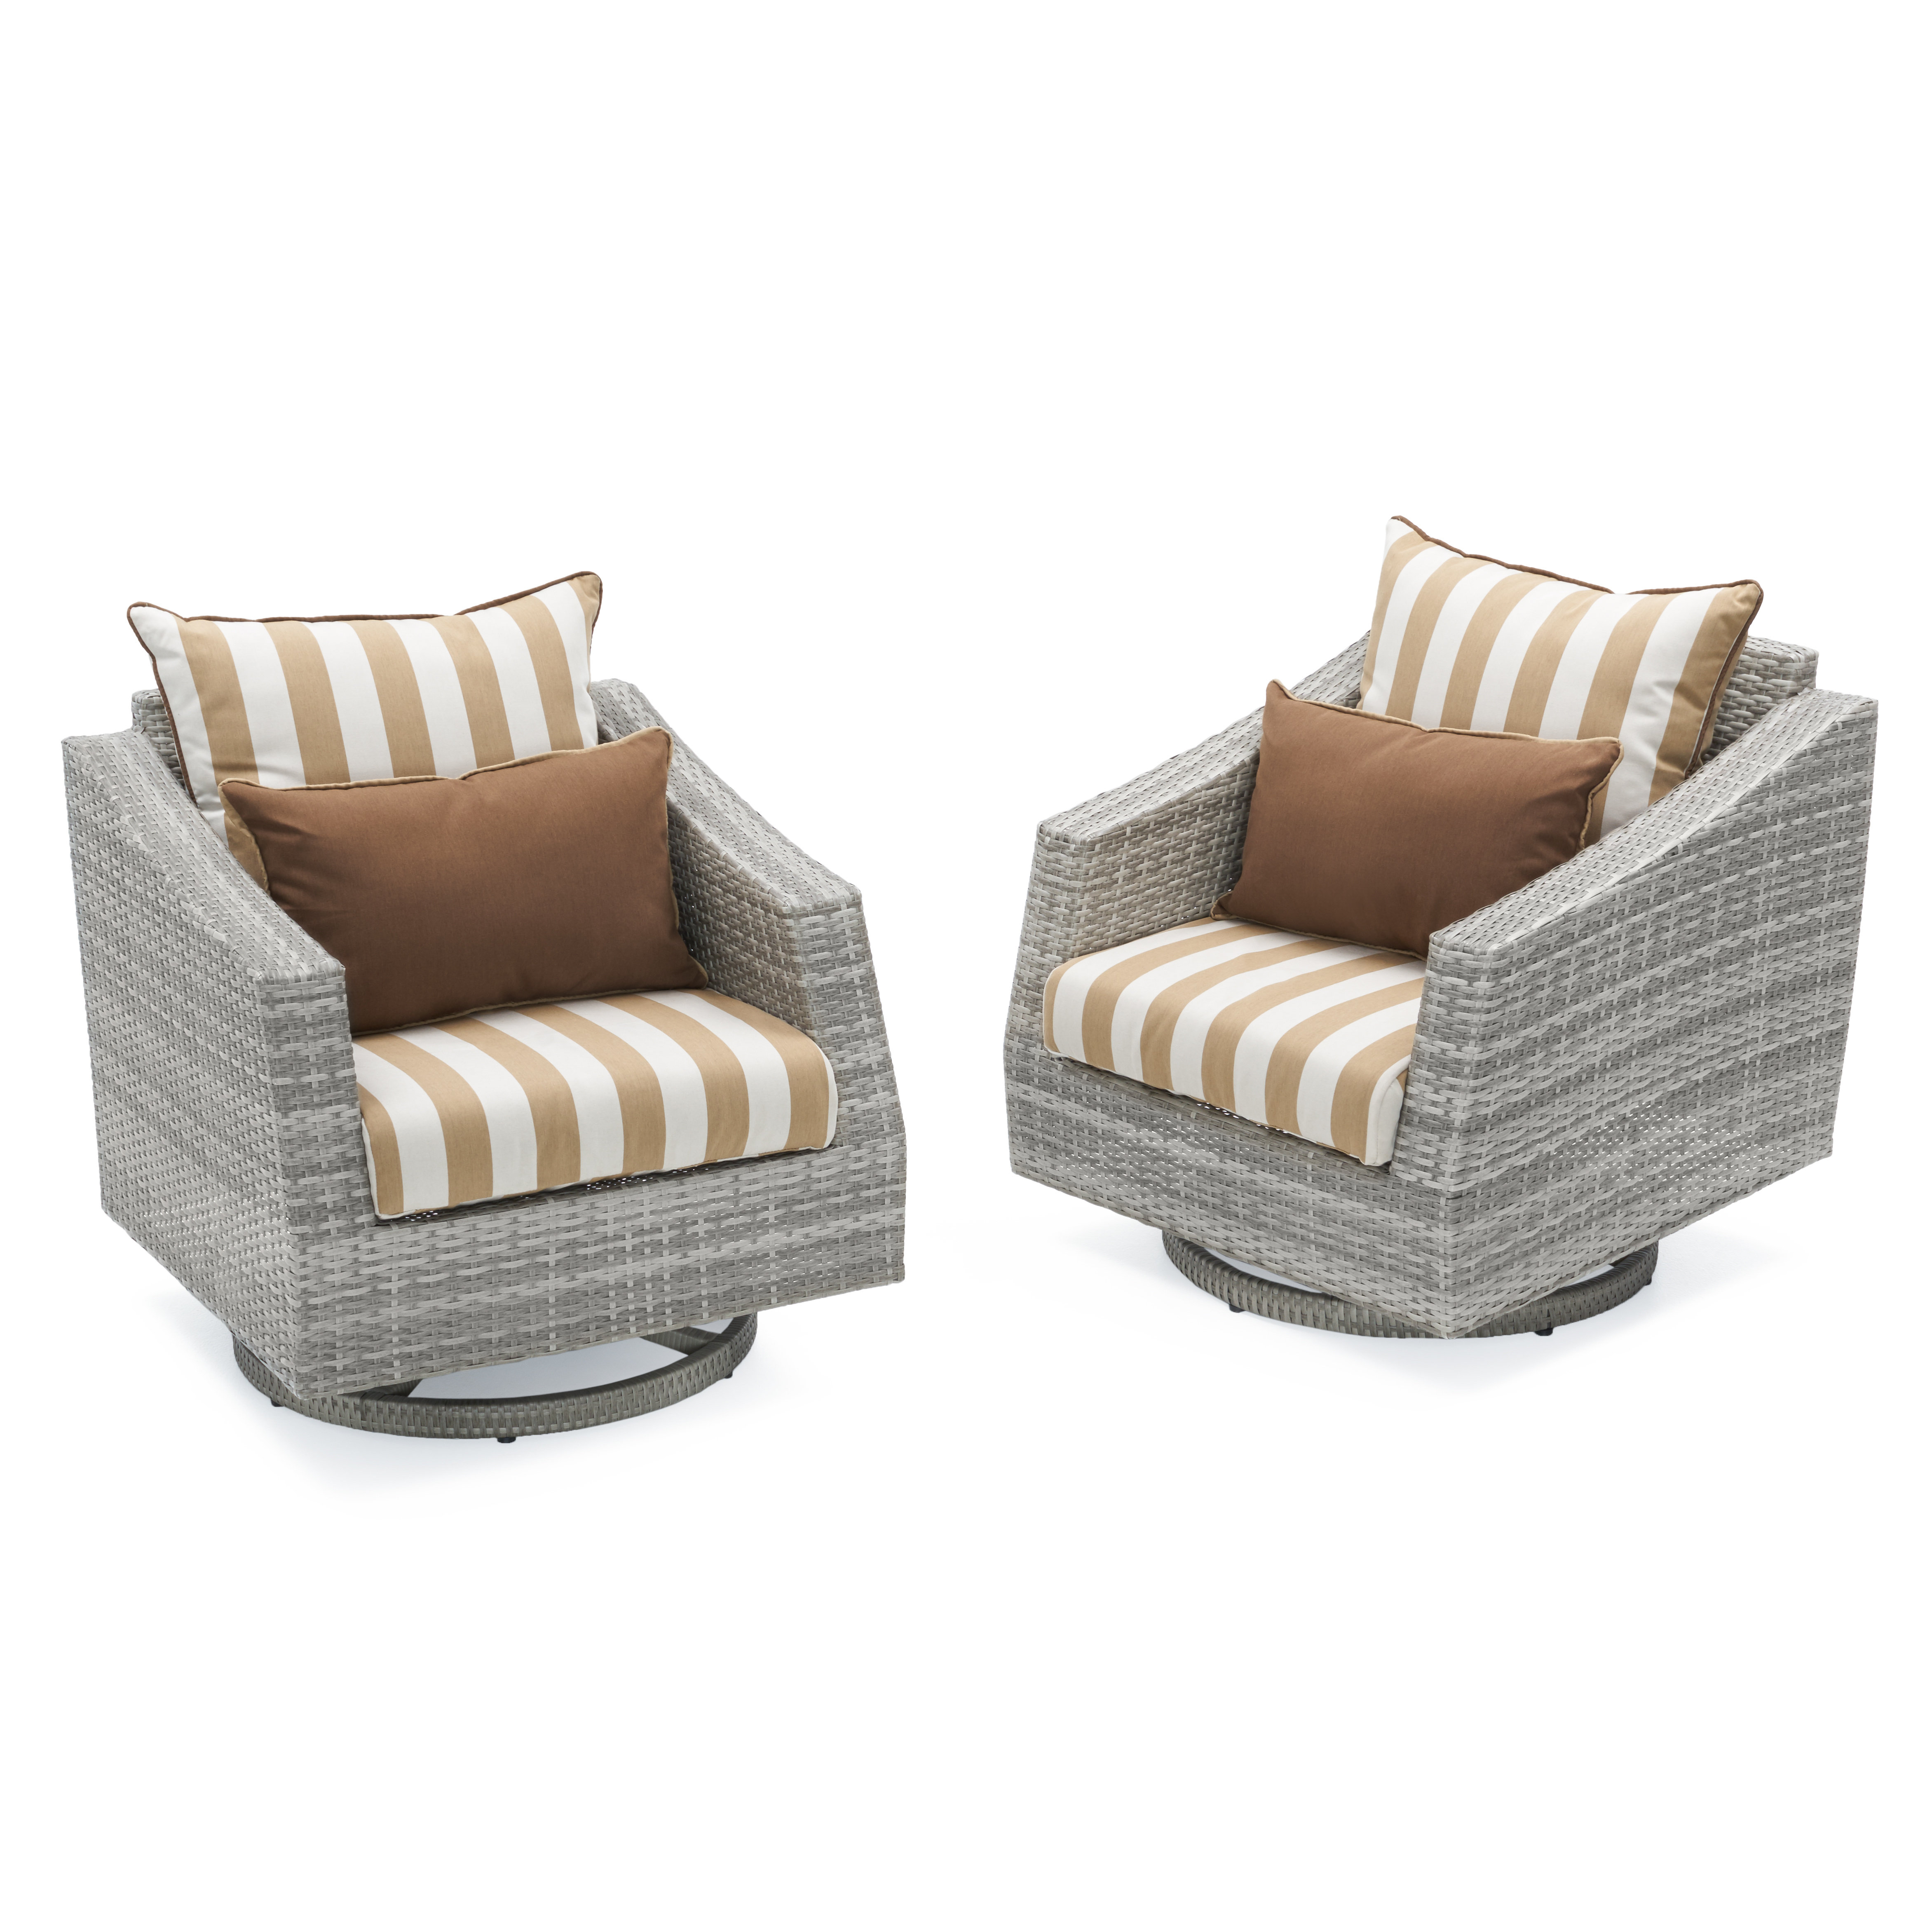 2019 Johana Patio Chair With Cushion Pertaining To Keever Patio Sofas With Sunbrella Cushions (View 1 of 20)